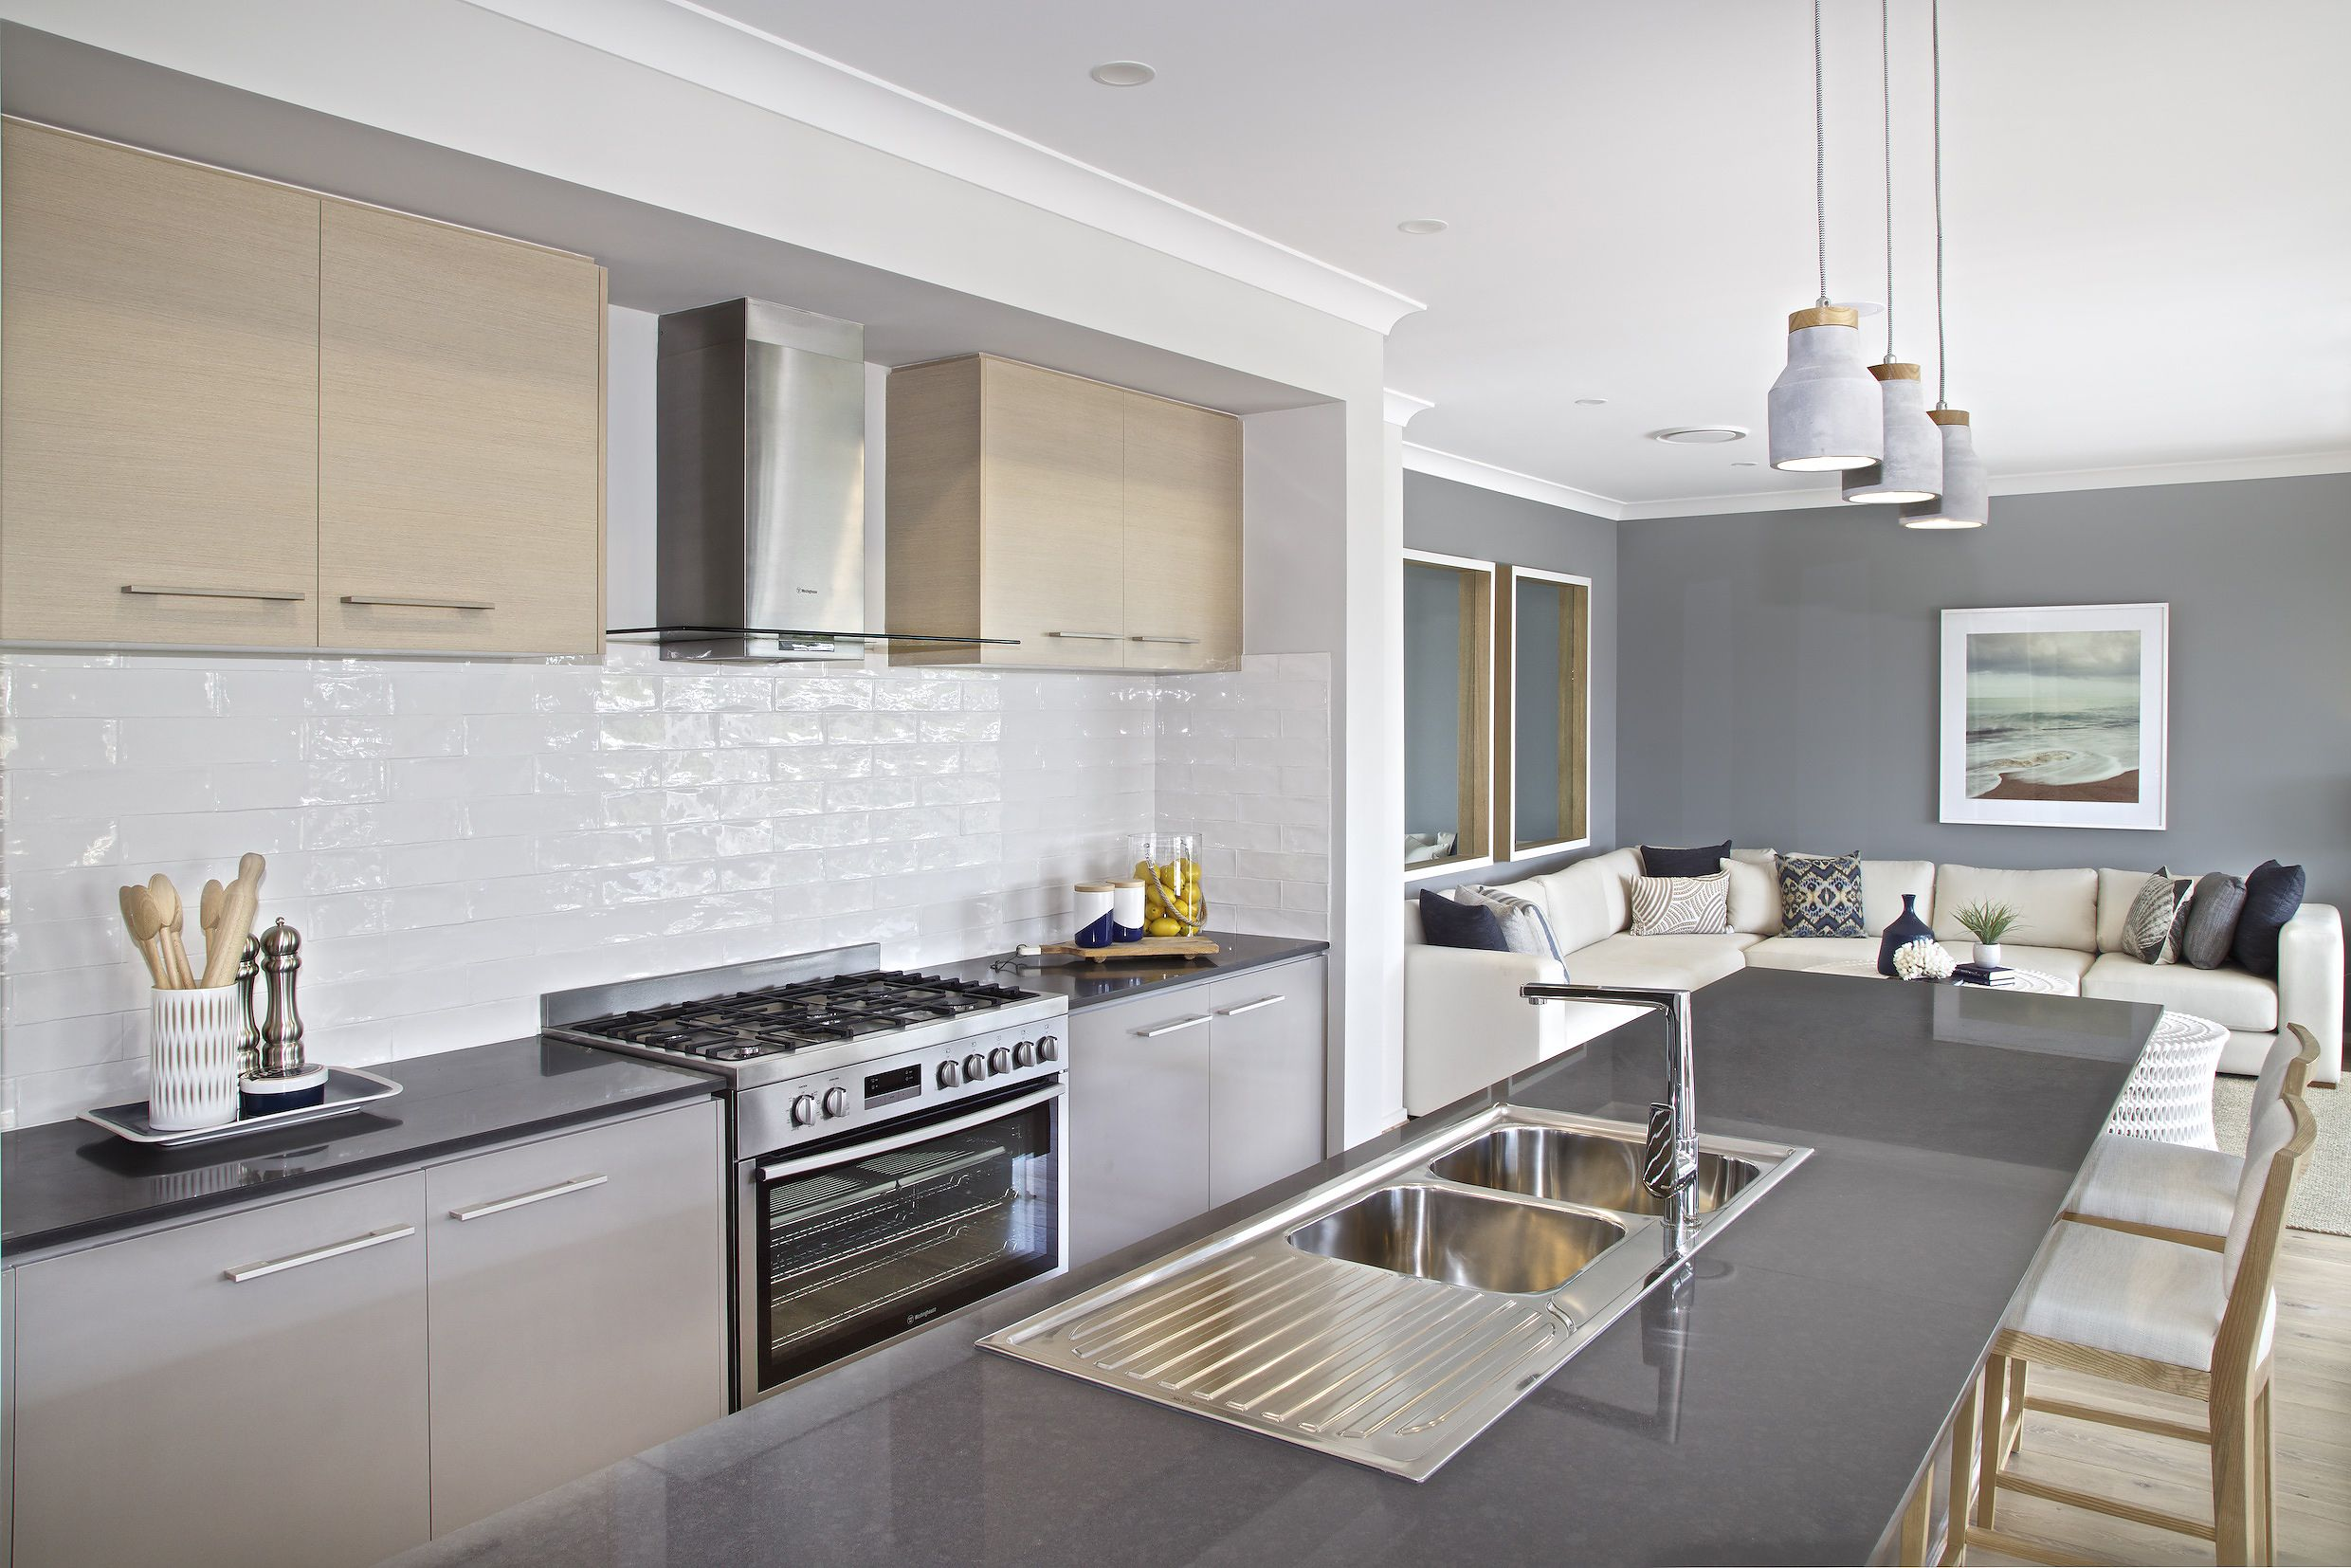 Sheridan 37 | Counter top, Kitchens and Room